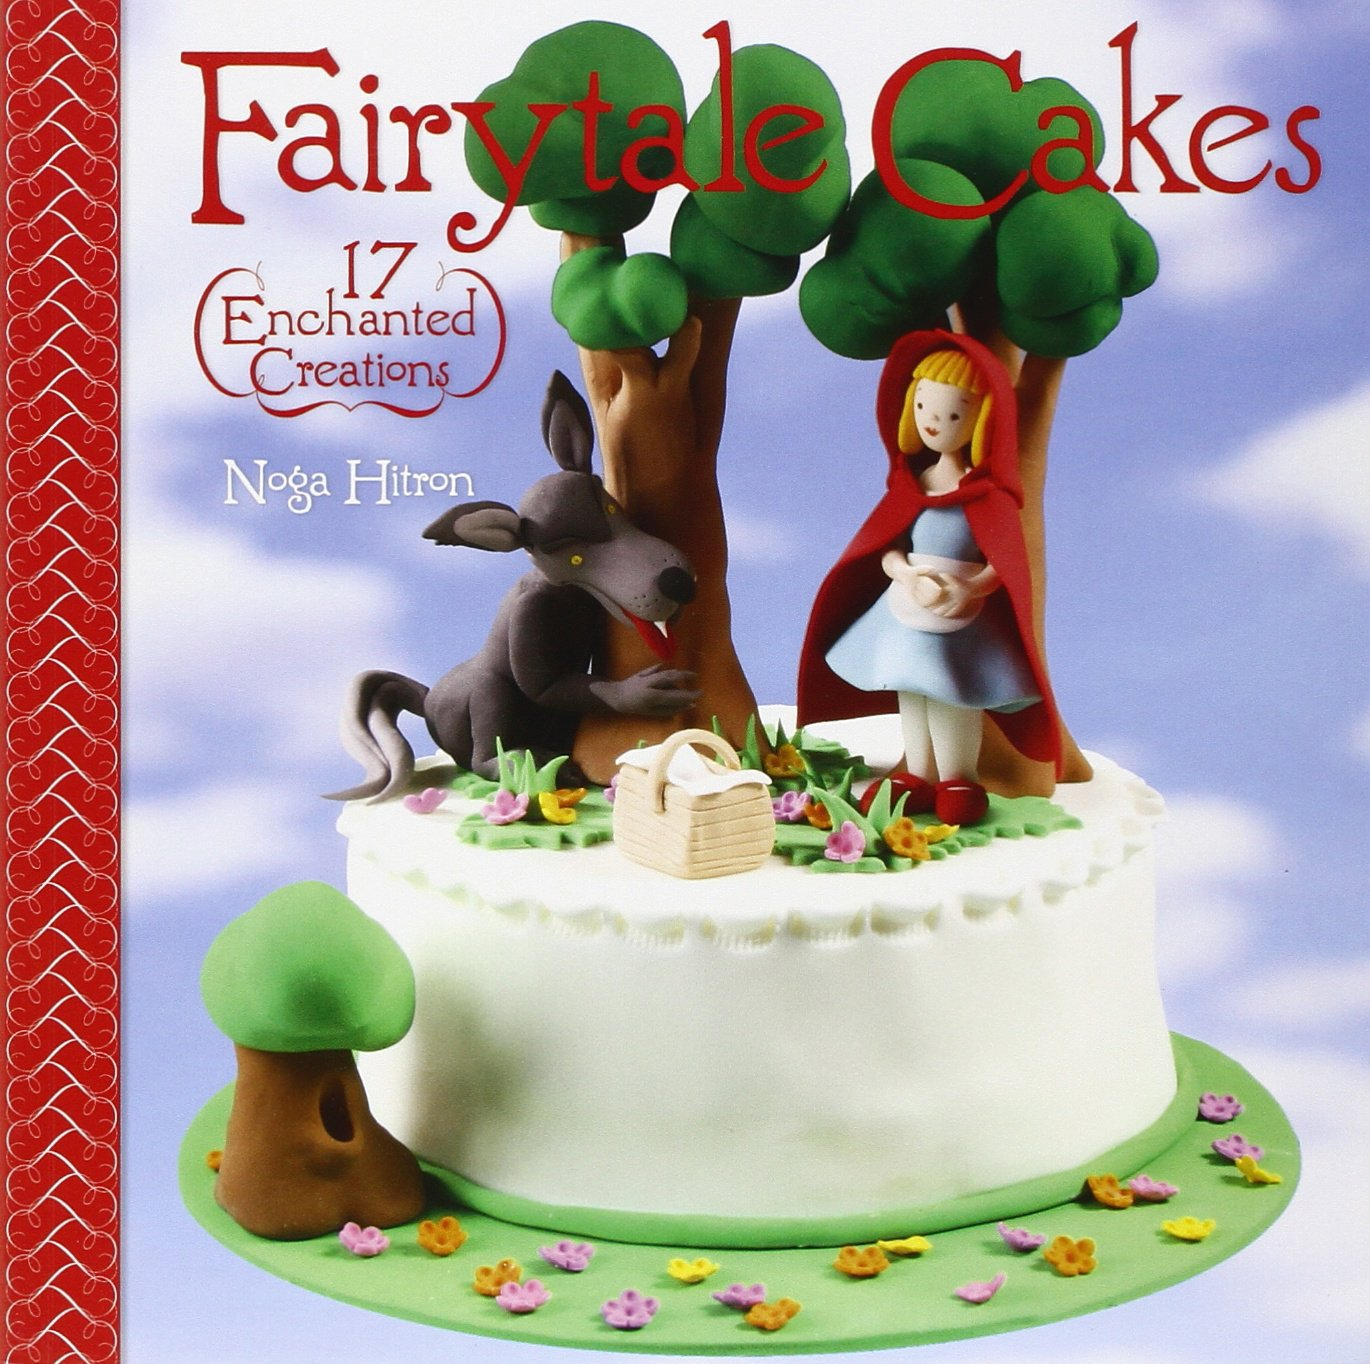 Fairytale Cakes 17 Enchanted Creations Noga Hitron 9781600591945 Momaey Alas Stroller Miauw Kitty Books